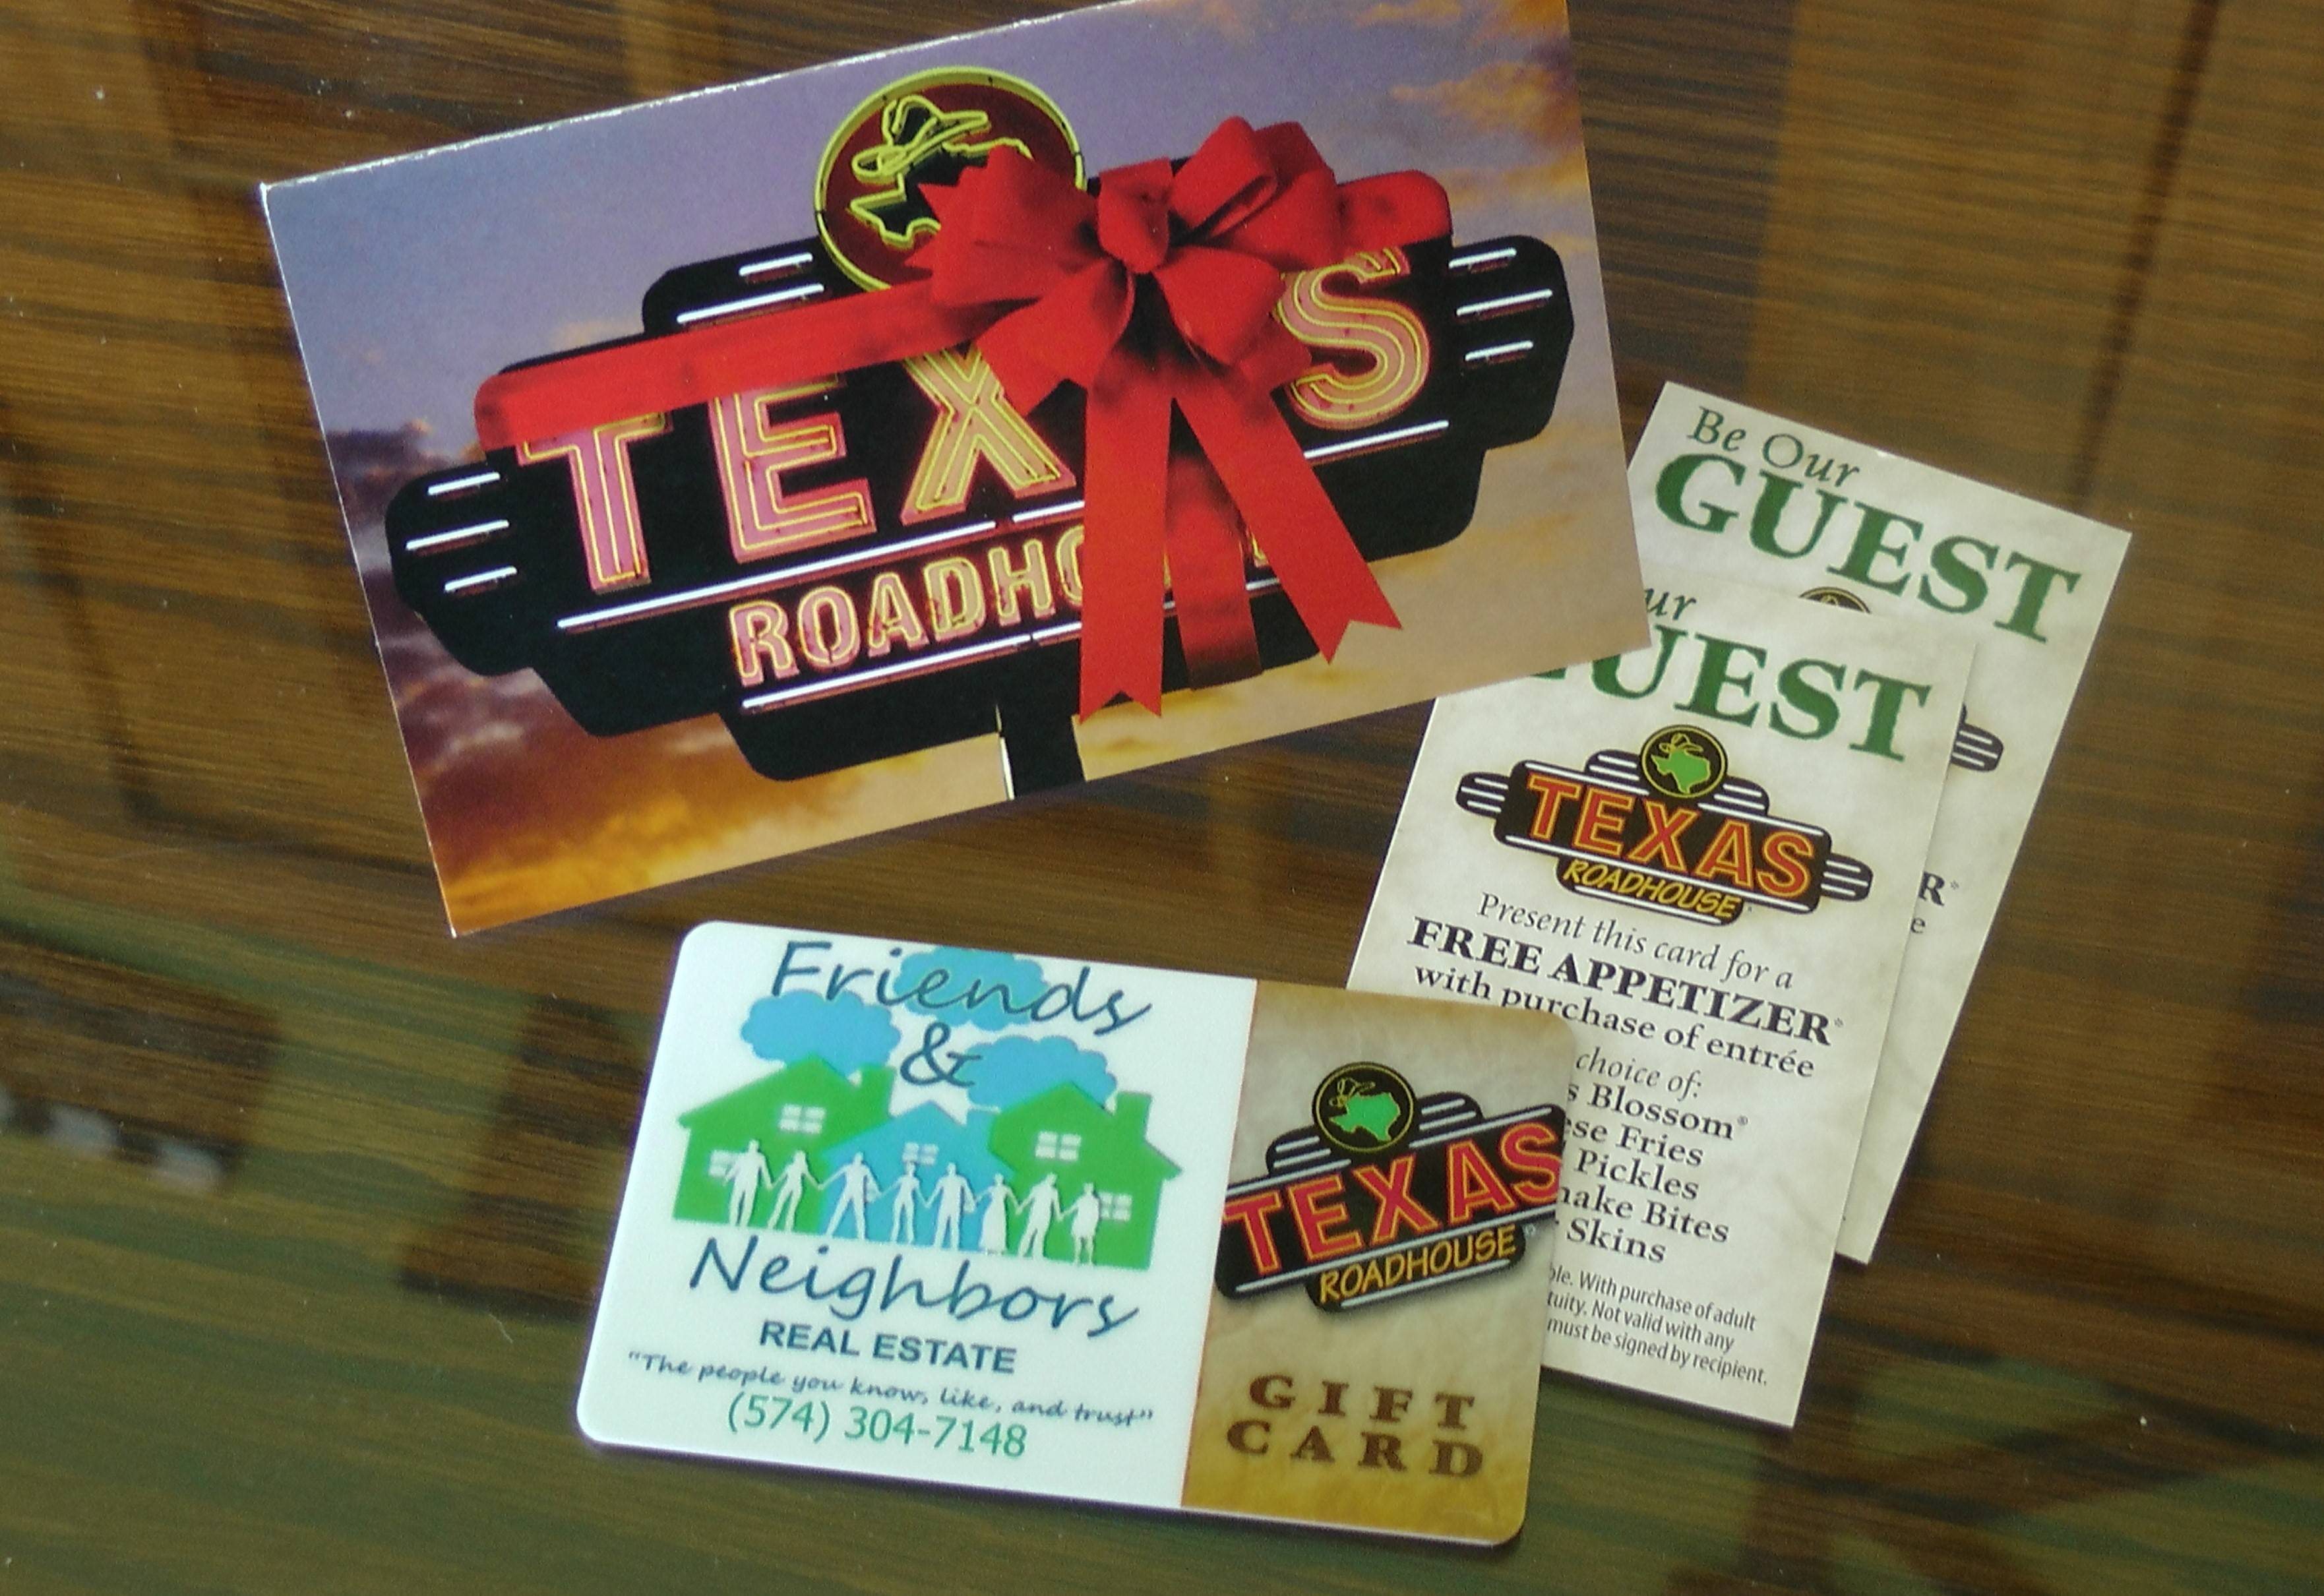 Texas roadhouse gift cards where to gift ftempo for How to get gift cards for your business